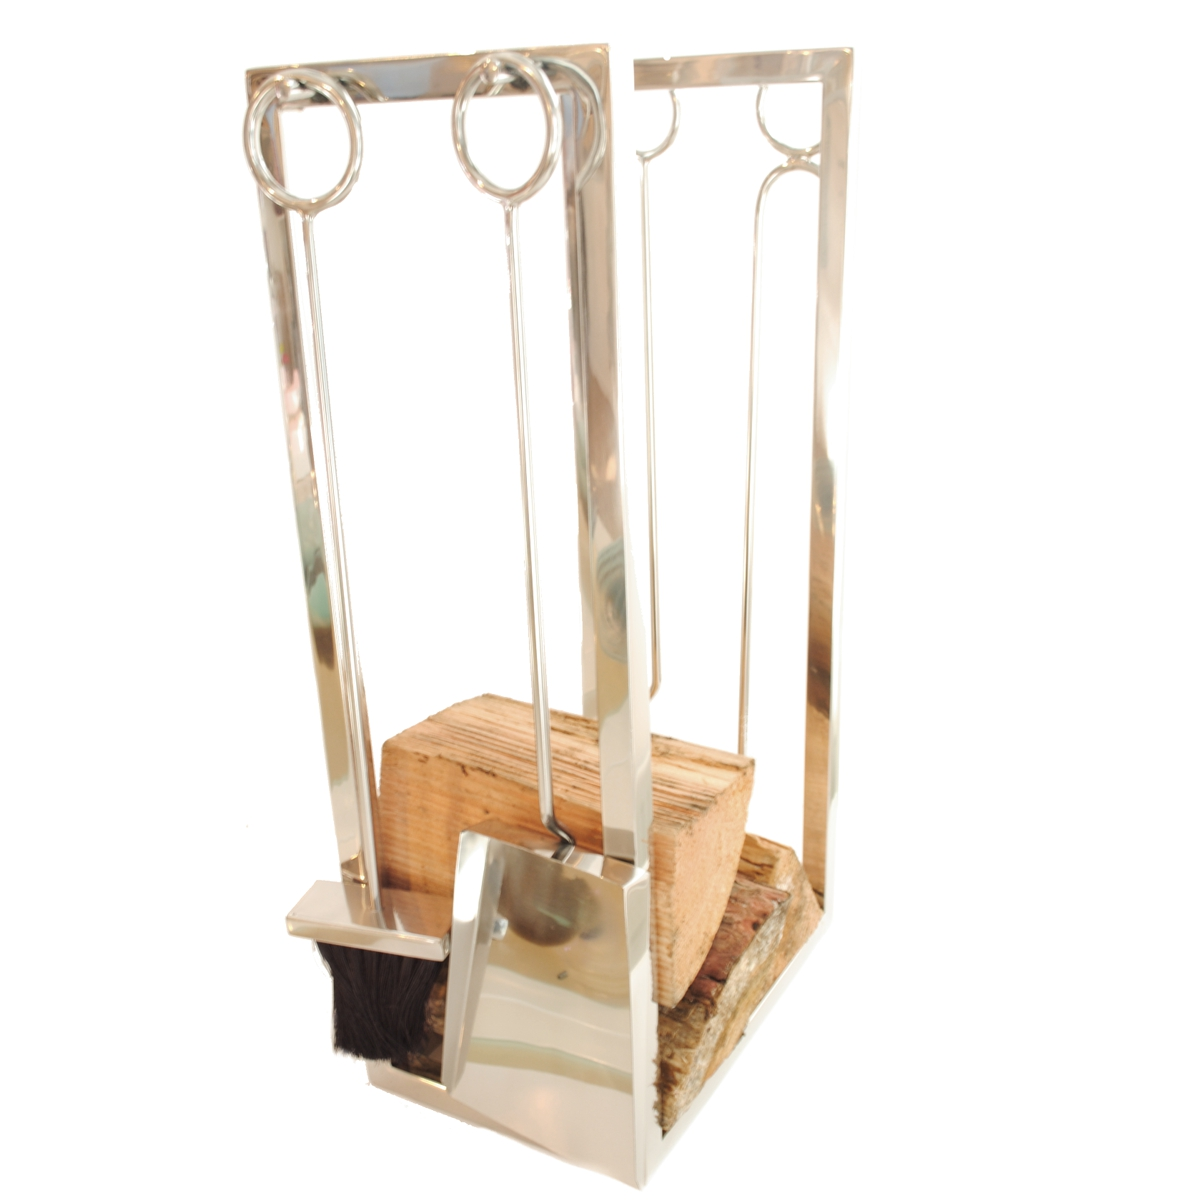 Roco Verre Fireside Tool Set and Log Basket